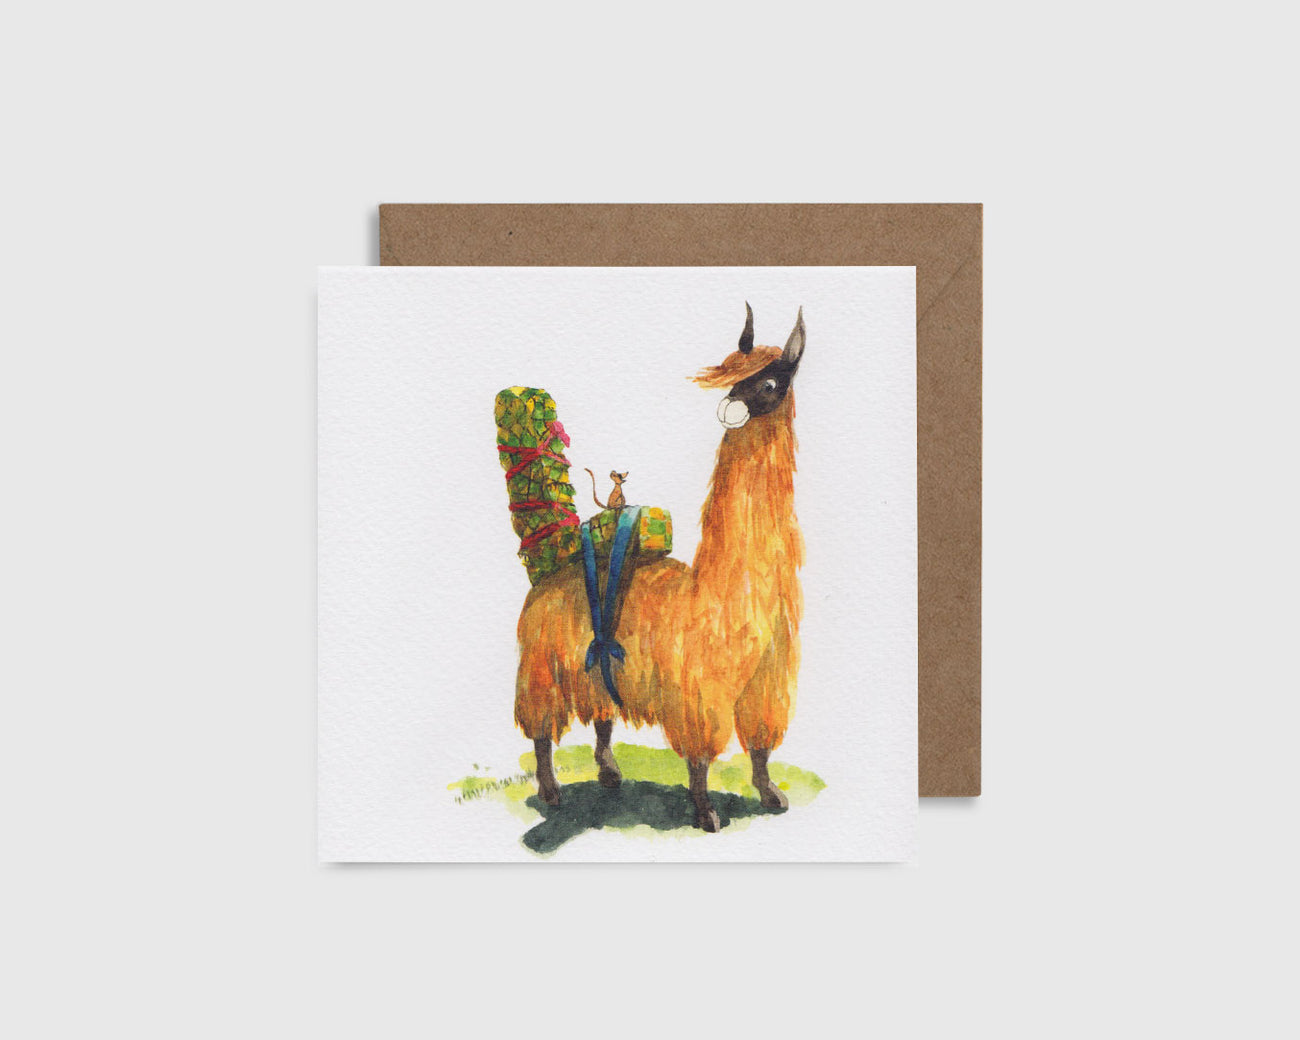 L is for Llama - L comme Lama